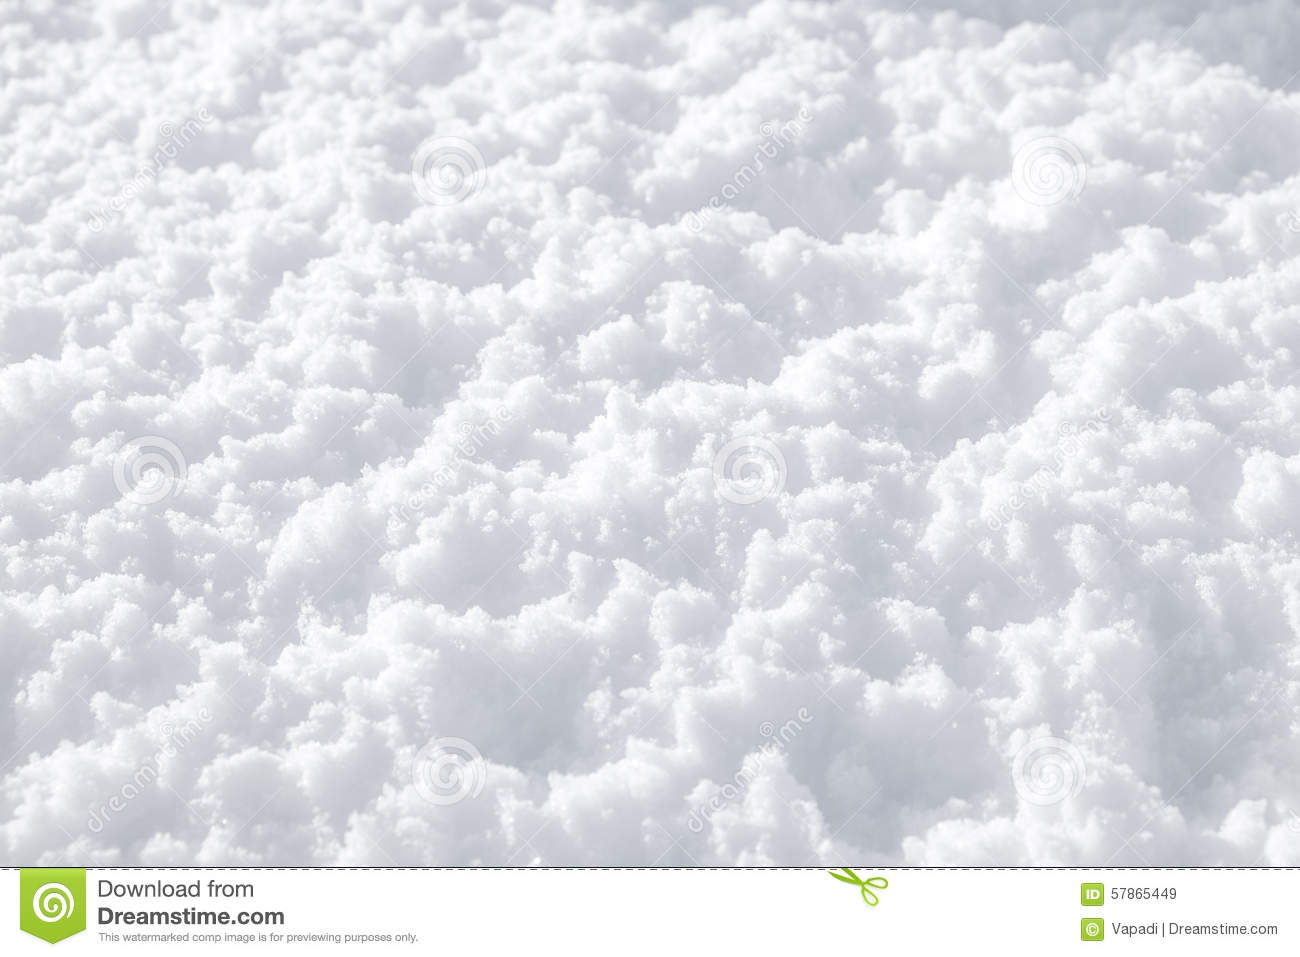 Free Snowflakes Vector Images over 2500